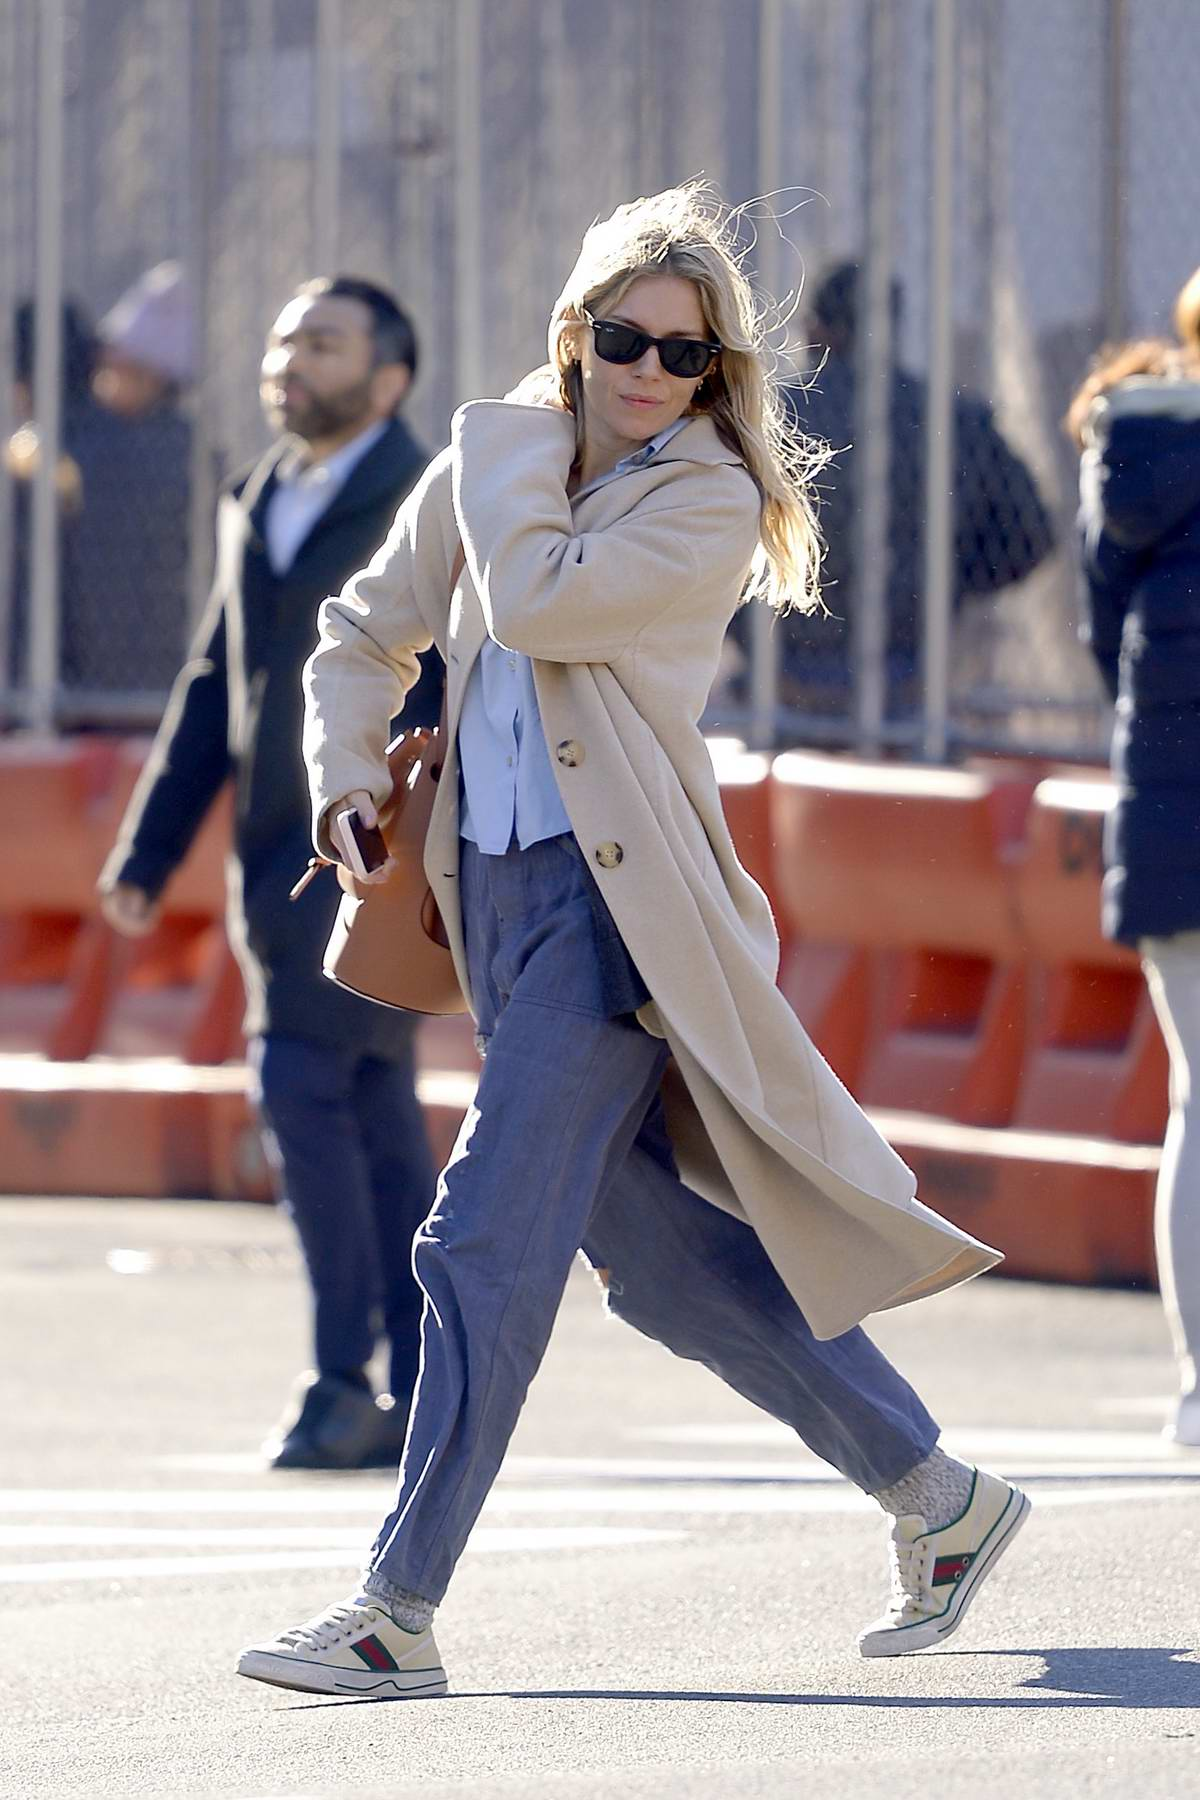 Sienna Miller spotted in a beige trench coat while out running errands in New York City